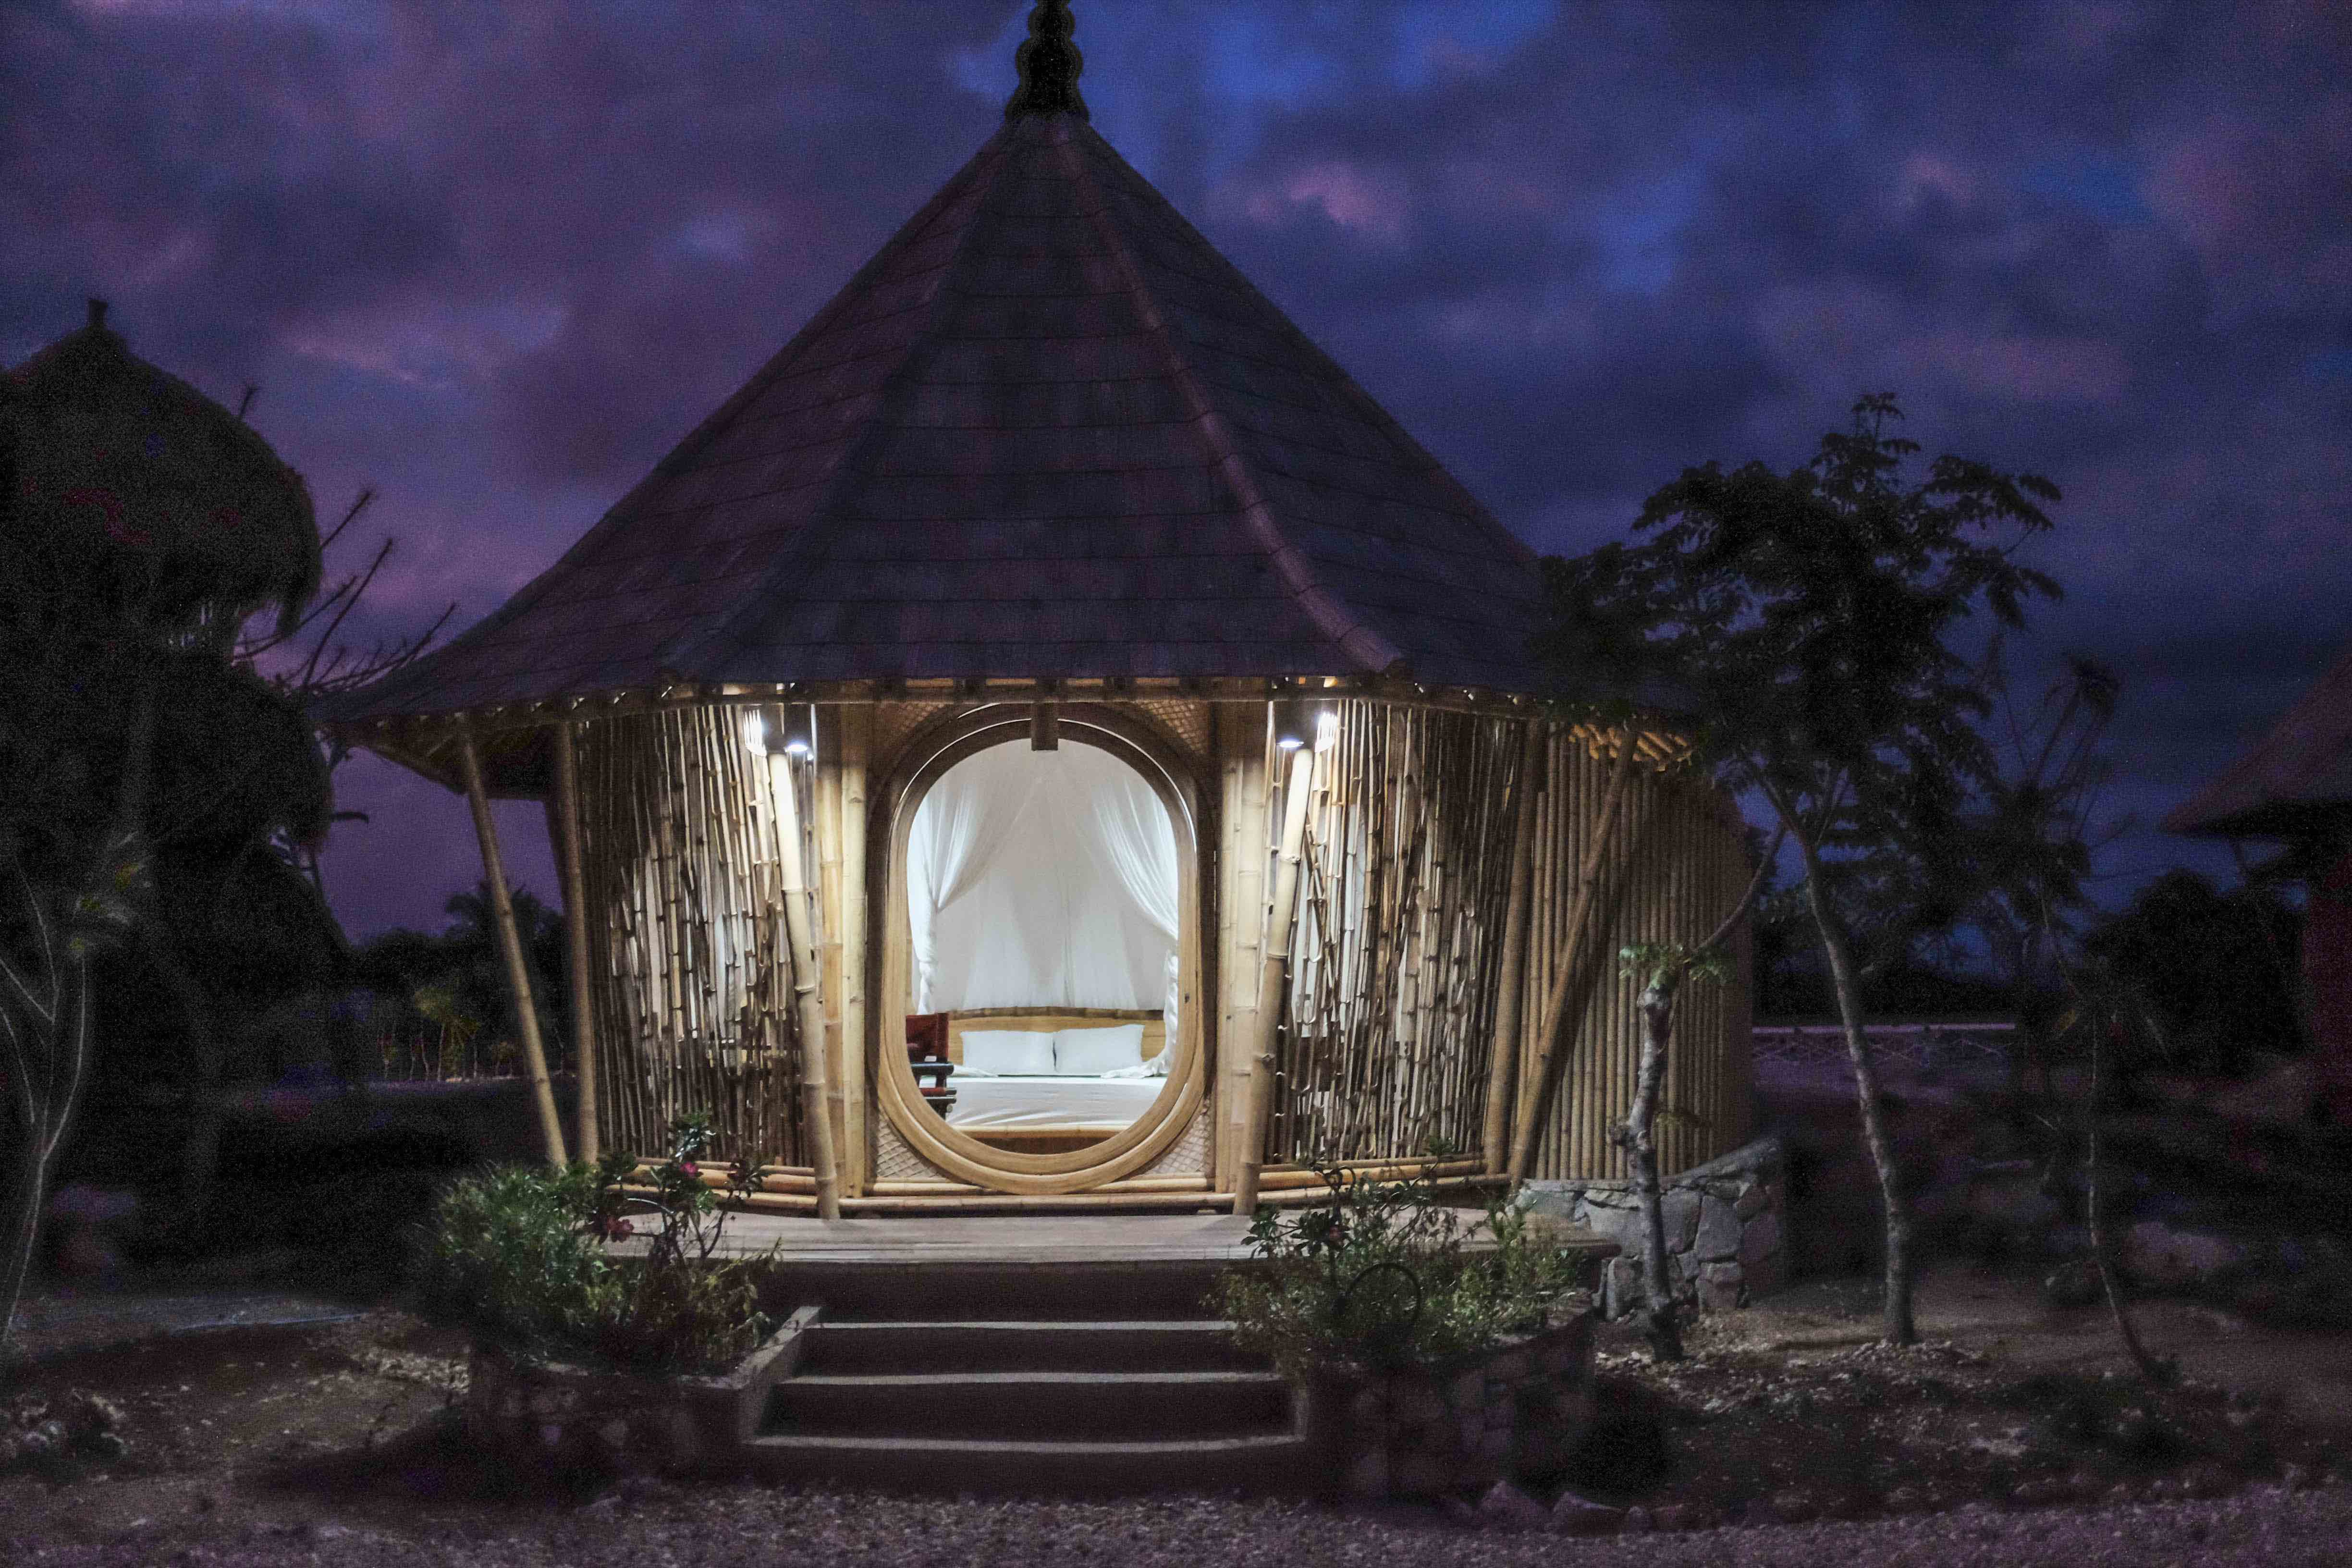 Bamboo guest pavilion at Sumba Hospitality Foundation. Image: Our Better World